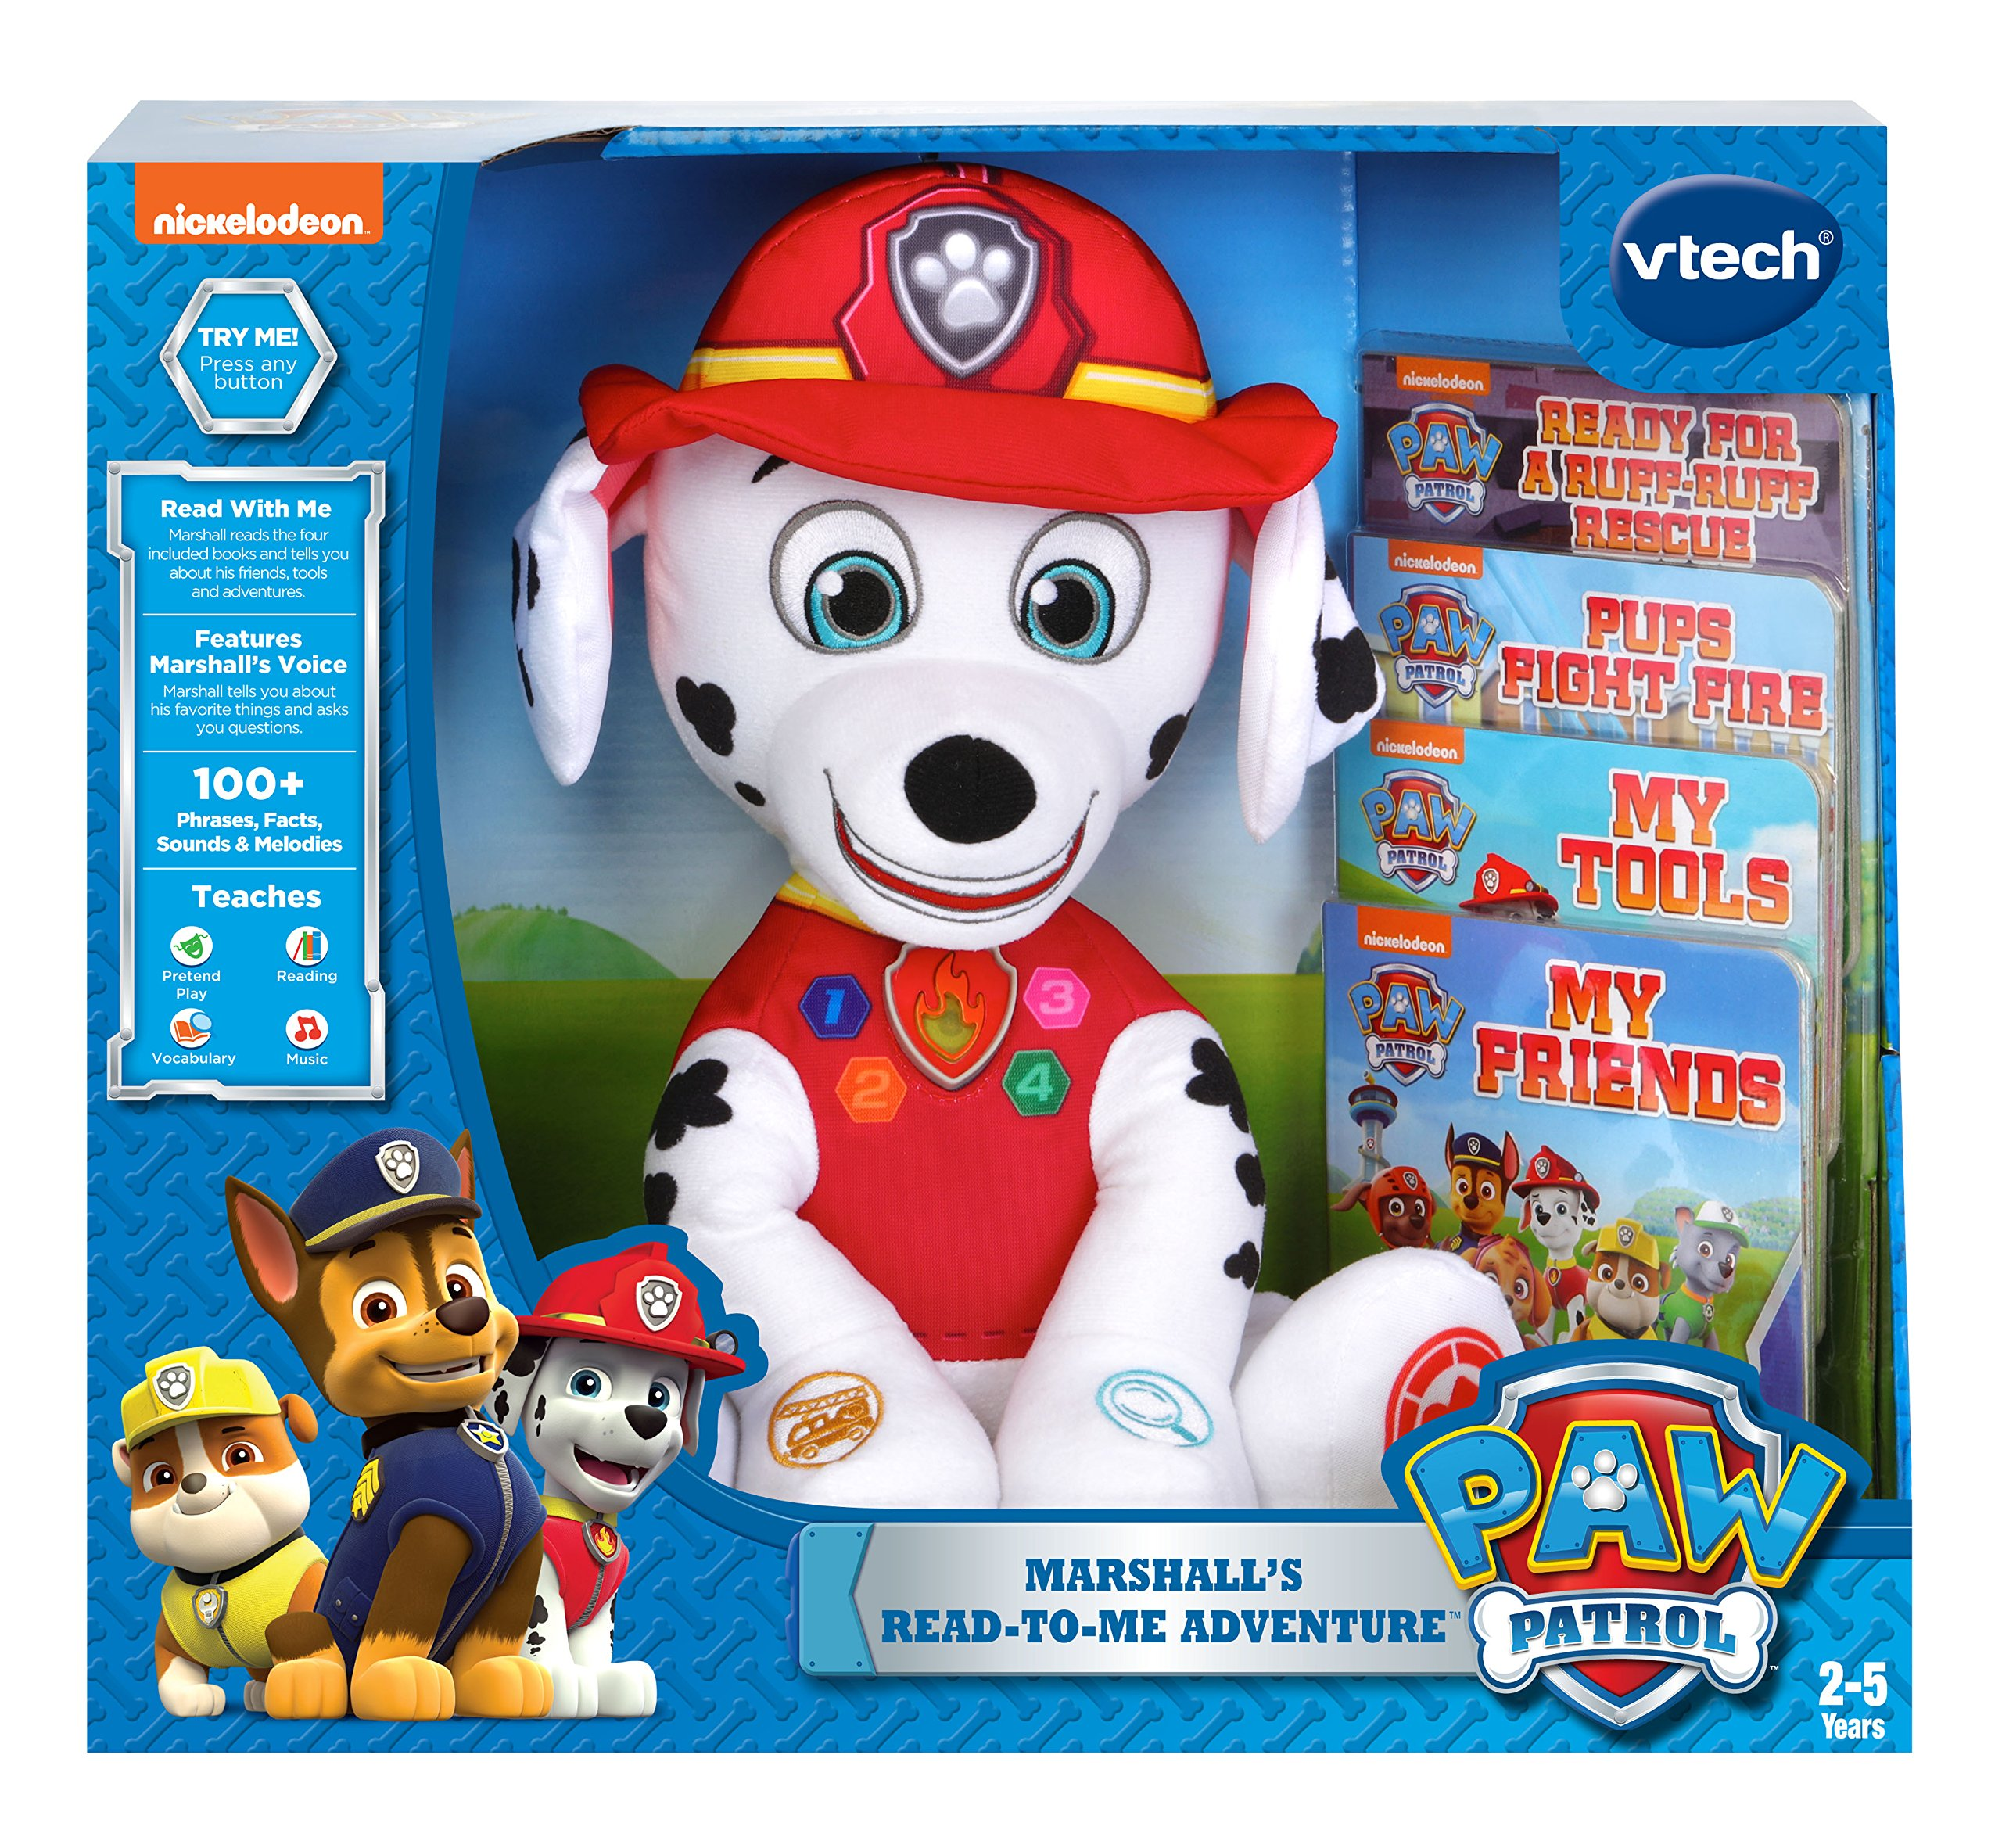 VTech PAW Patrol Marshall's Read-to-Me Adventure by VTech (Image #4)